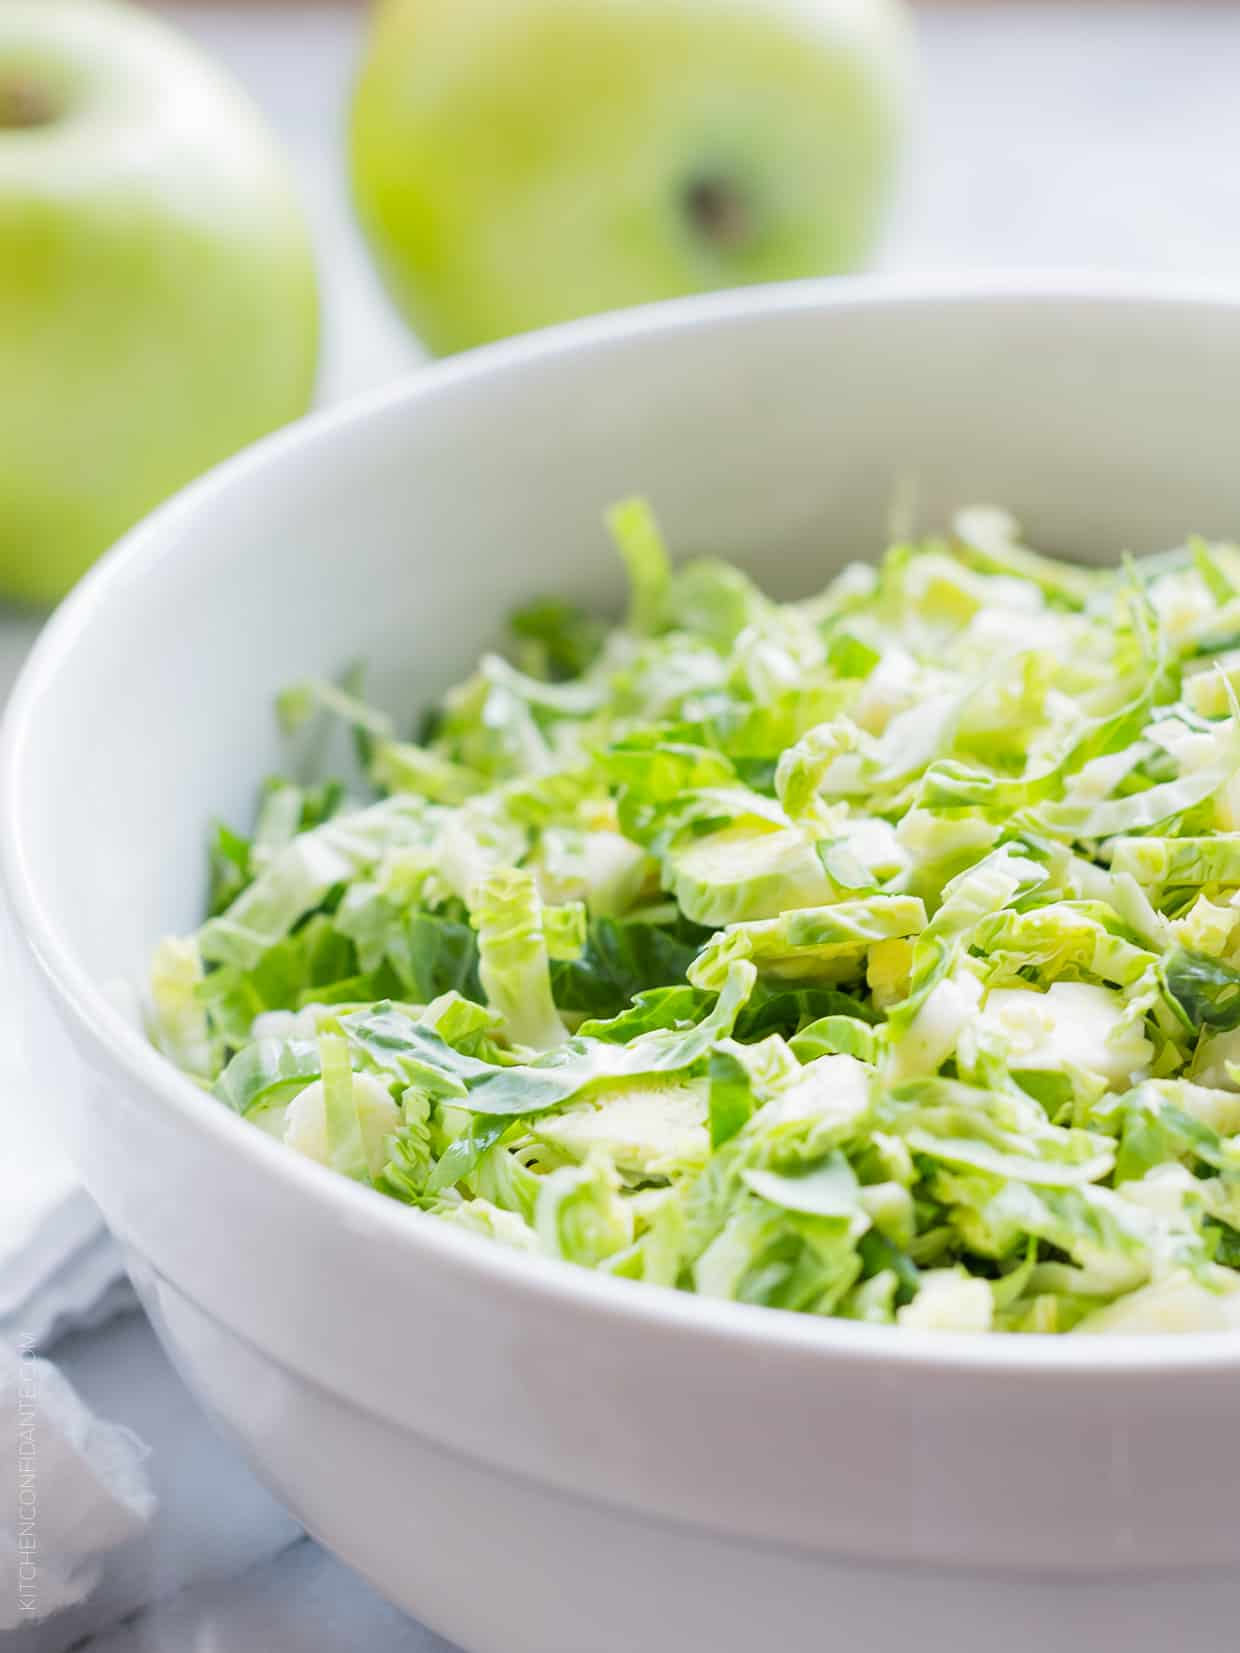 Shredded Brussels sprouts in a white bowl.